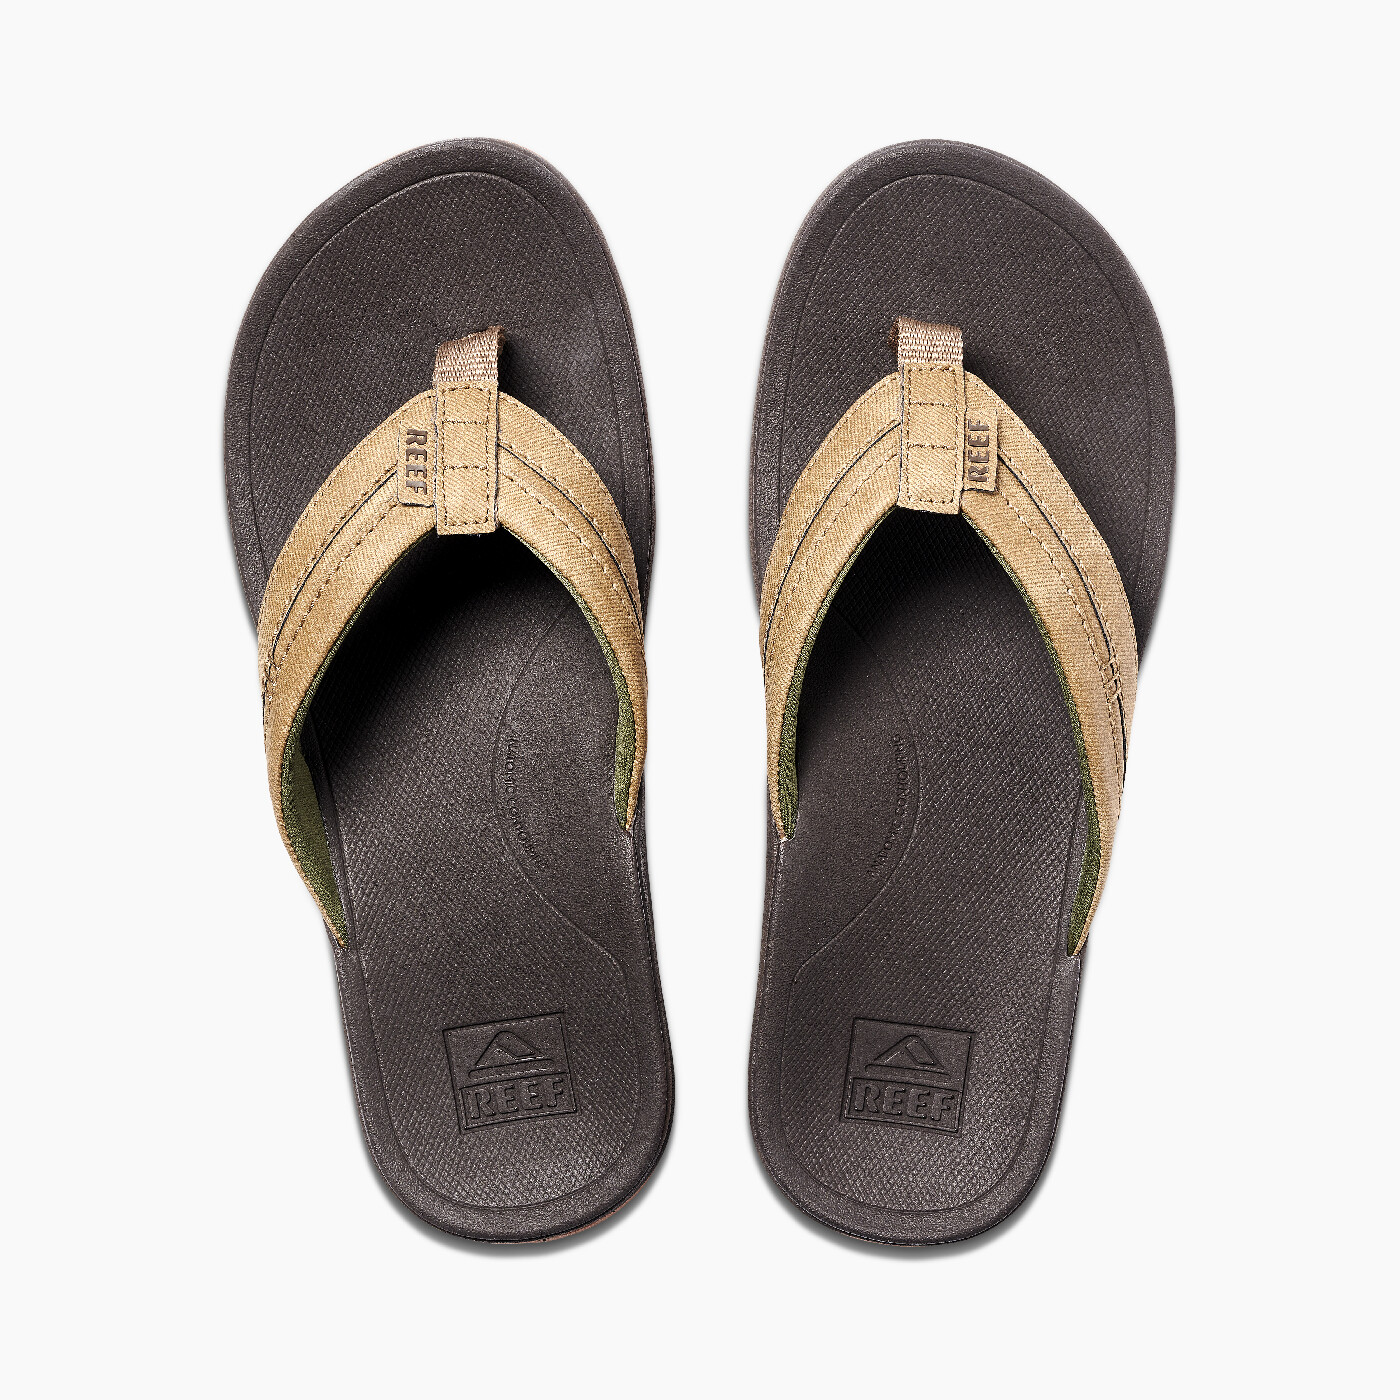 Reef Men's Ortho-Bounce Coast Flip Flop